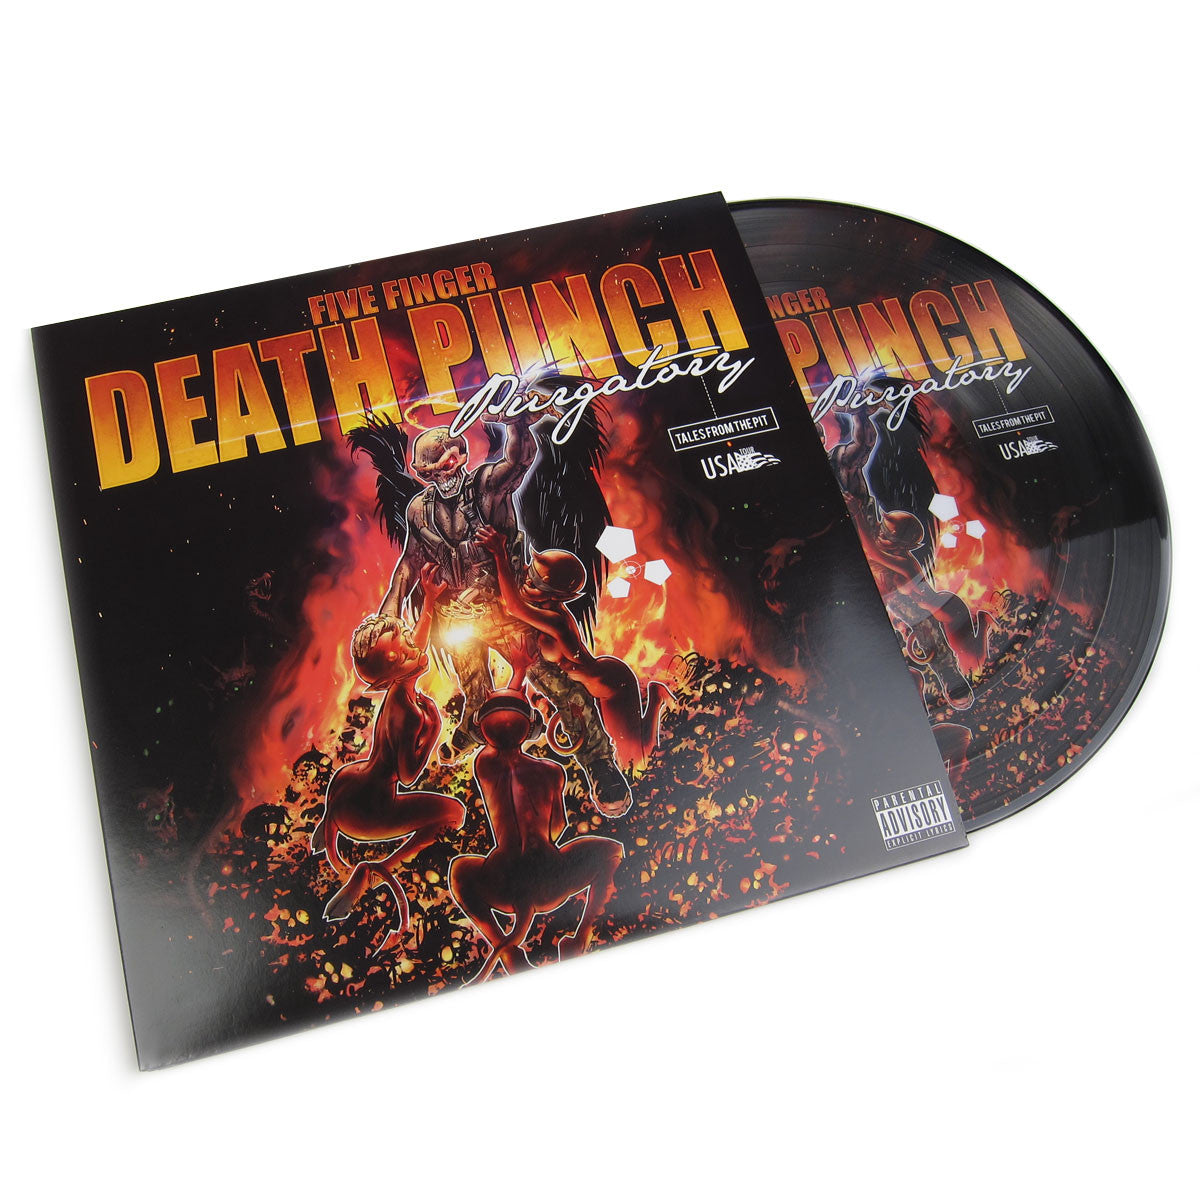 Five Finger Death Punch: Purgatory: Tales From The Pit (Picture Disc) Vinyl 2LP (Record Store Day)